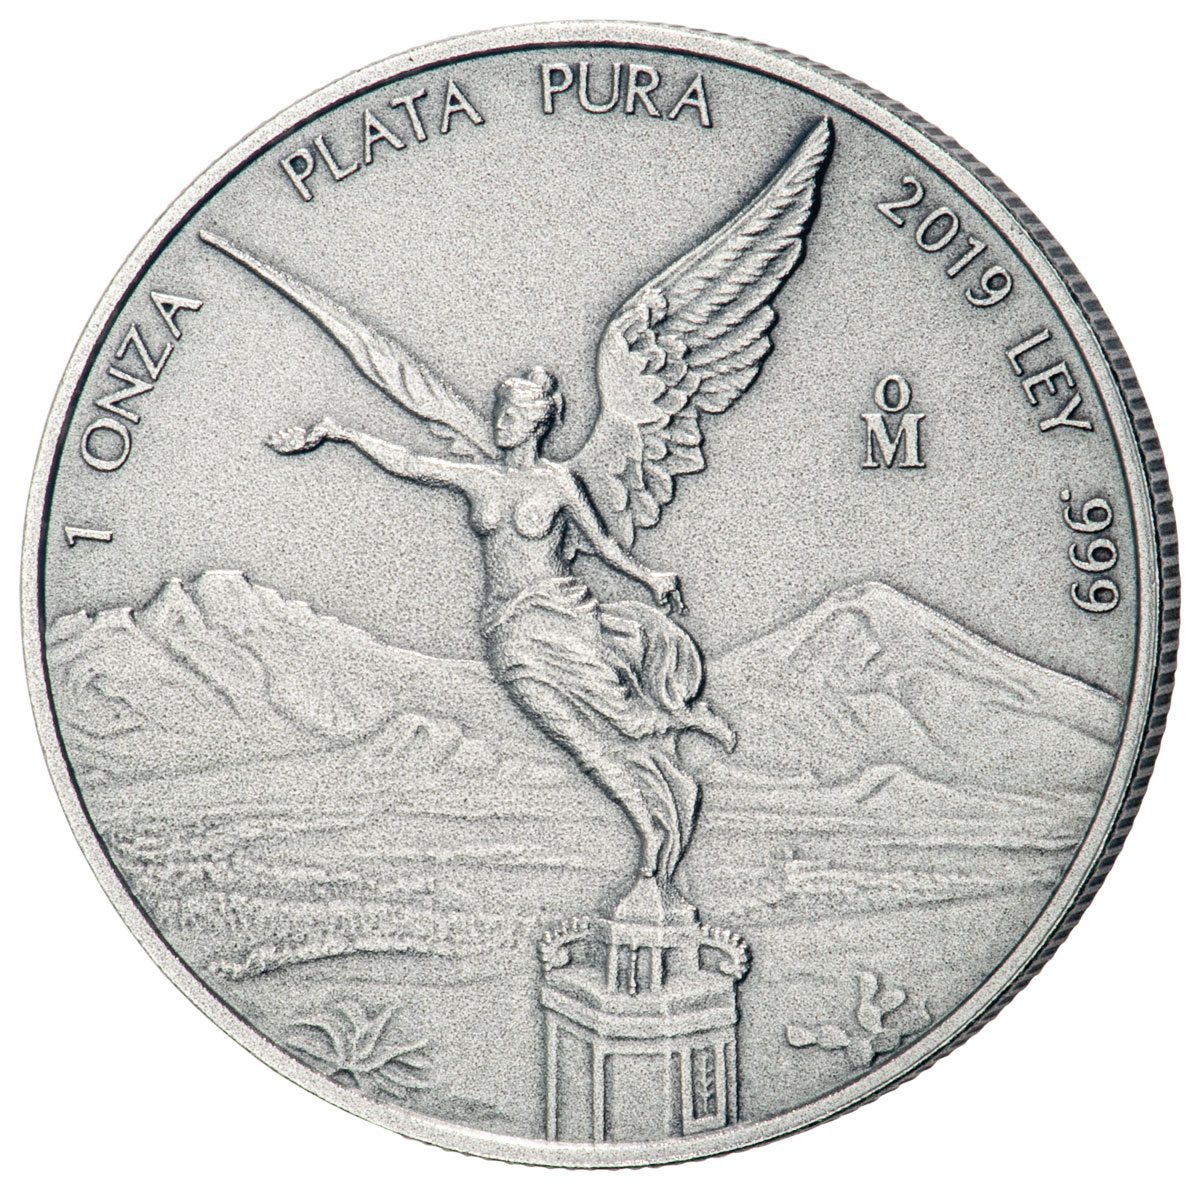 2019-Mo Mexico 1 oz Silver Libertad Antiqued 1 Onza Coin GEM BU